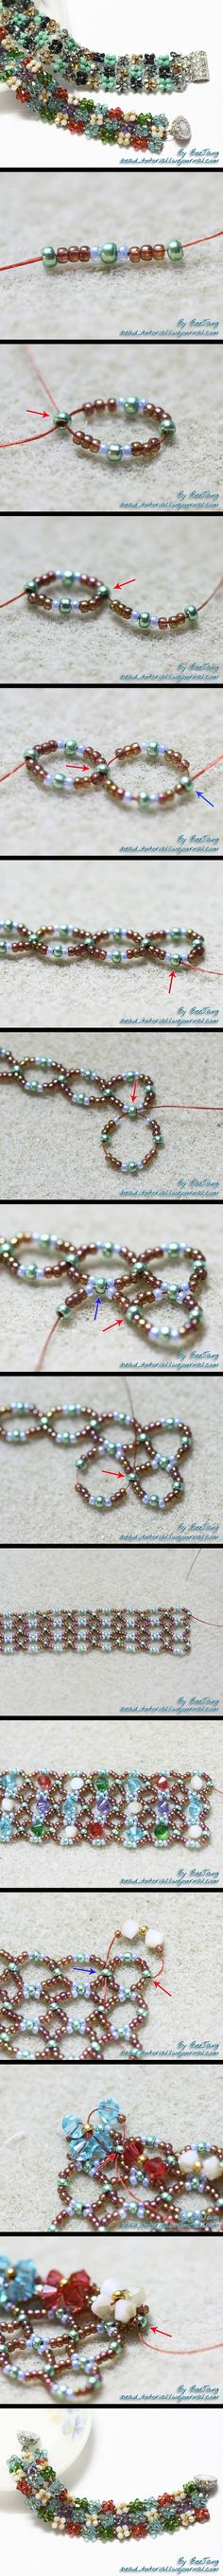 PAP bracelet So Beautiful.i wonder how the artist came to do this. at any rate, i always loved daisy chain flowers - this is a step beyond. Bead Jewellery, Seed Bead Jewelry, Beaded Jewelry, Handmade Jewelry, Seed Bead Tutorials, Jewelry Making Tutorials, Beading Tutorials, Beaded Bracelet Patterns, Jewelry Patterns